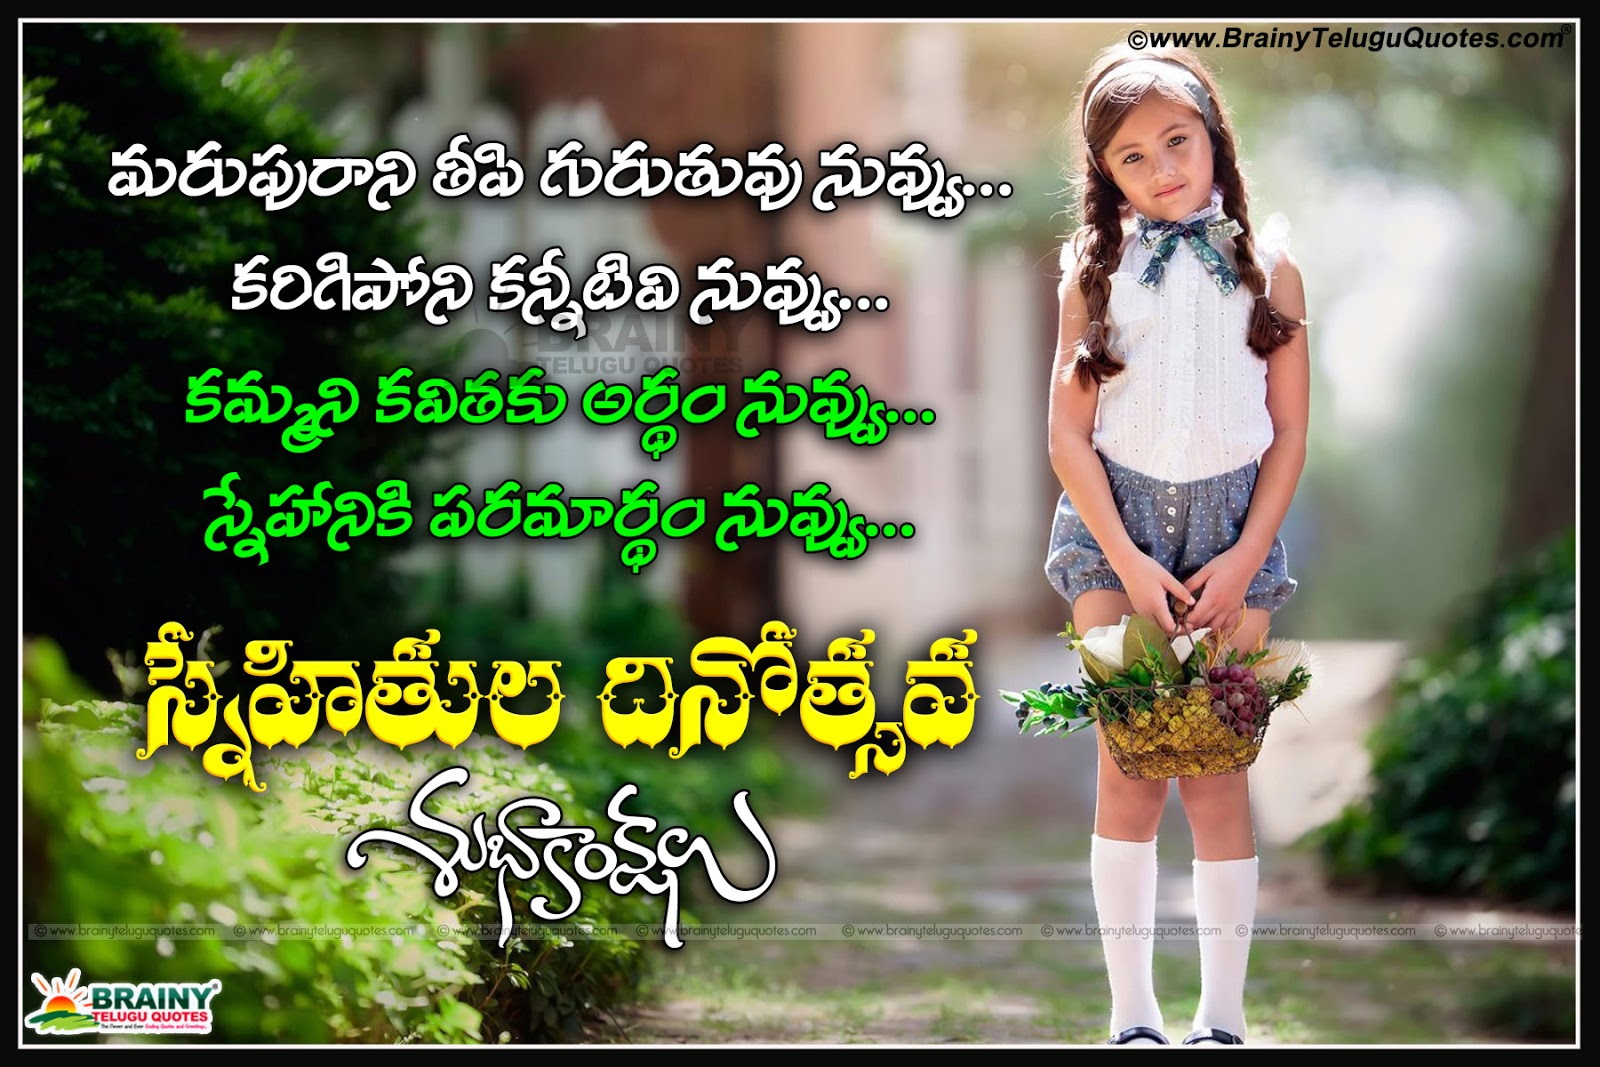 Images of Telugu Kavithalu On Friendship In English - www